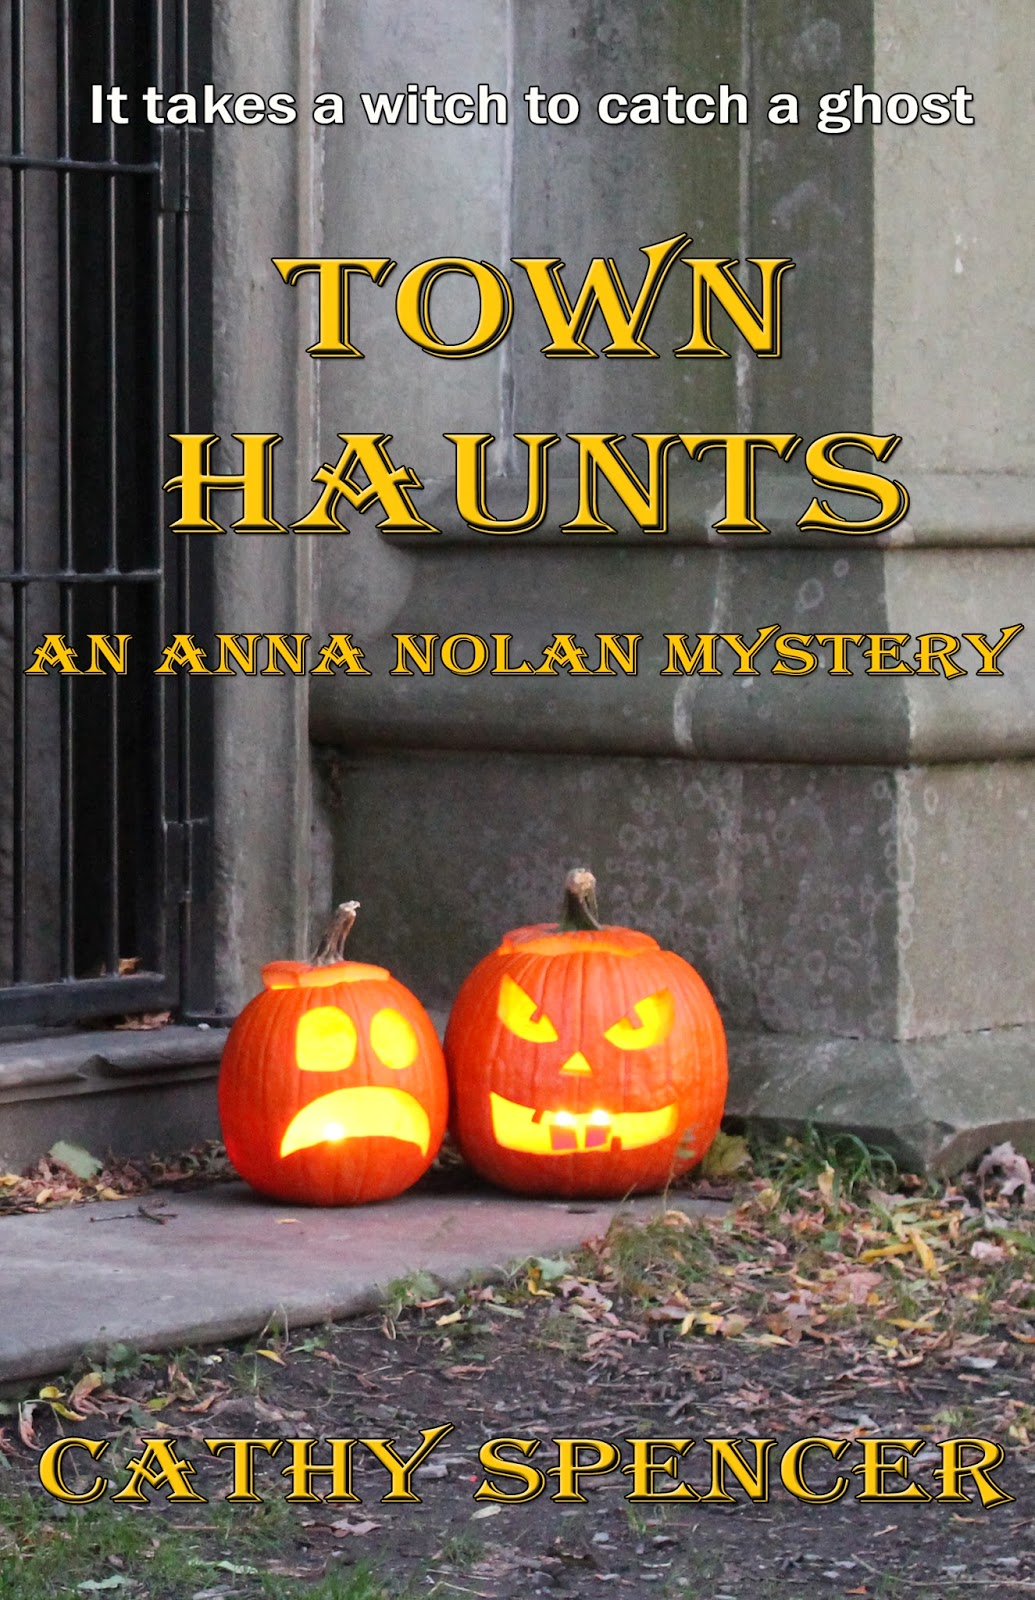 Book Review: Town Haunts by Cathy Spencer